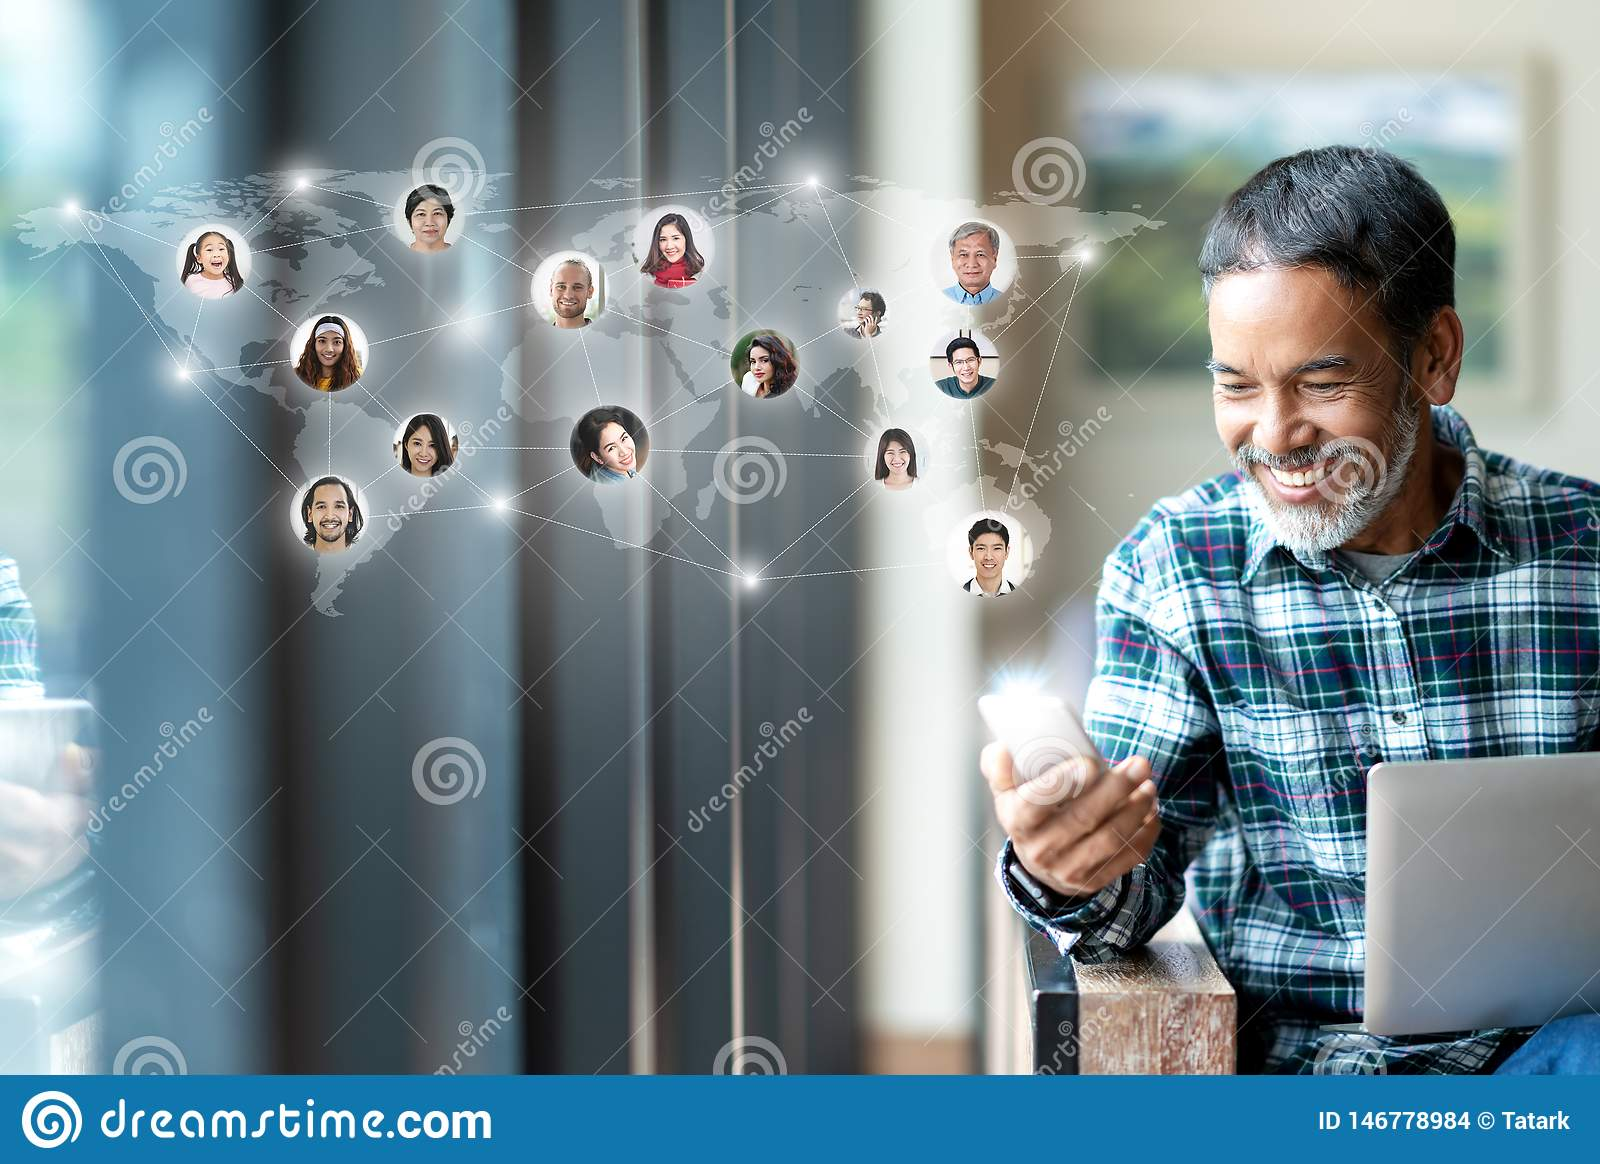 Social media network, Global network connection and people connecting all over the world map. Smiling happy mature man using